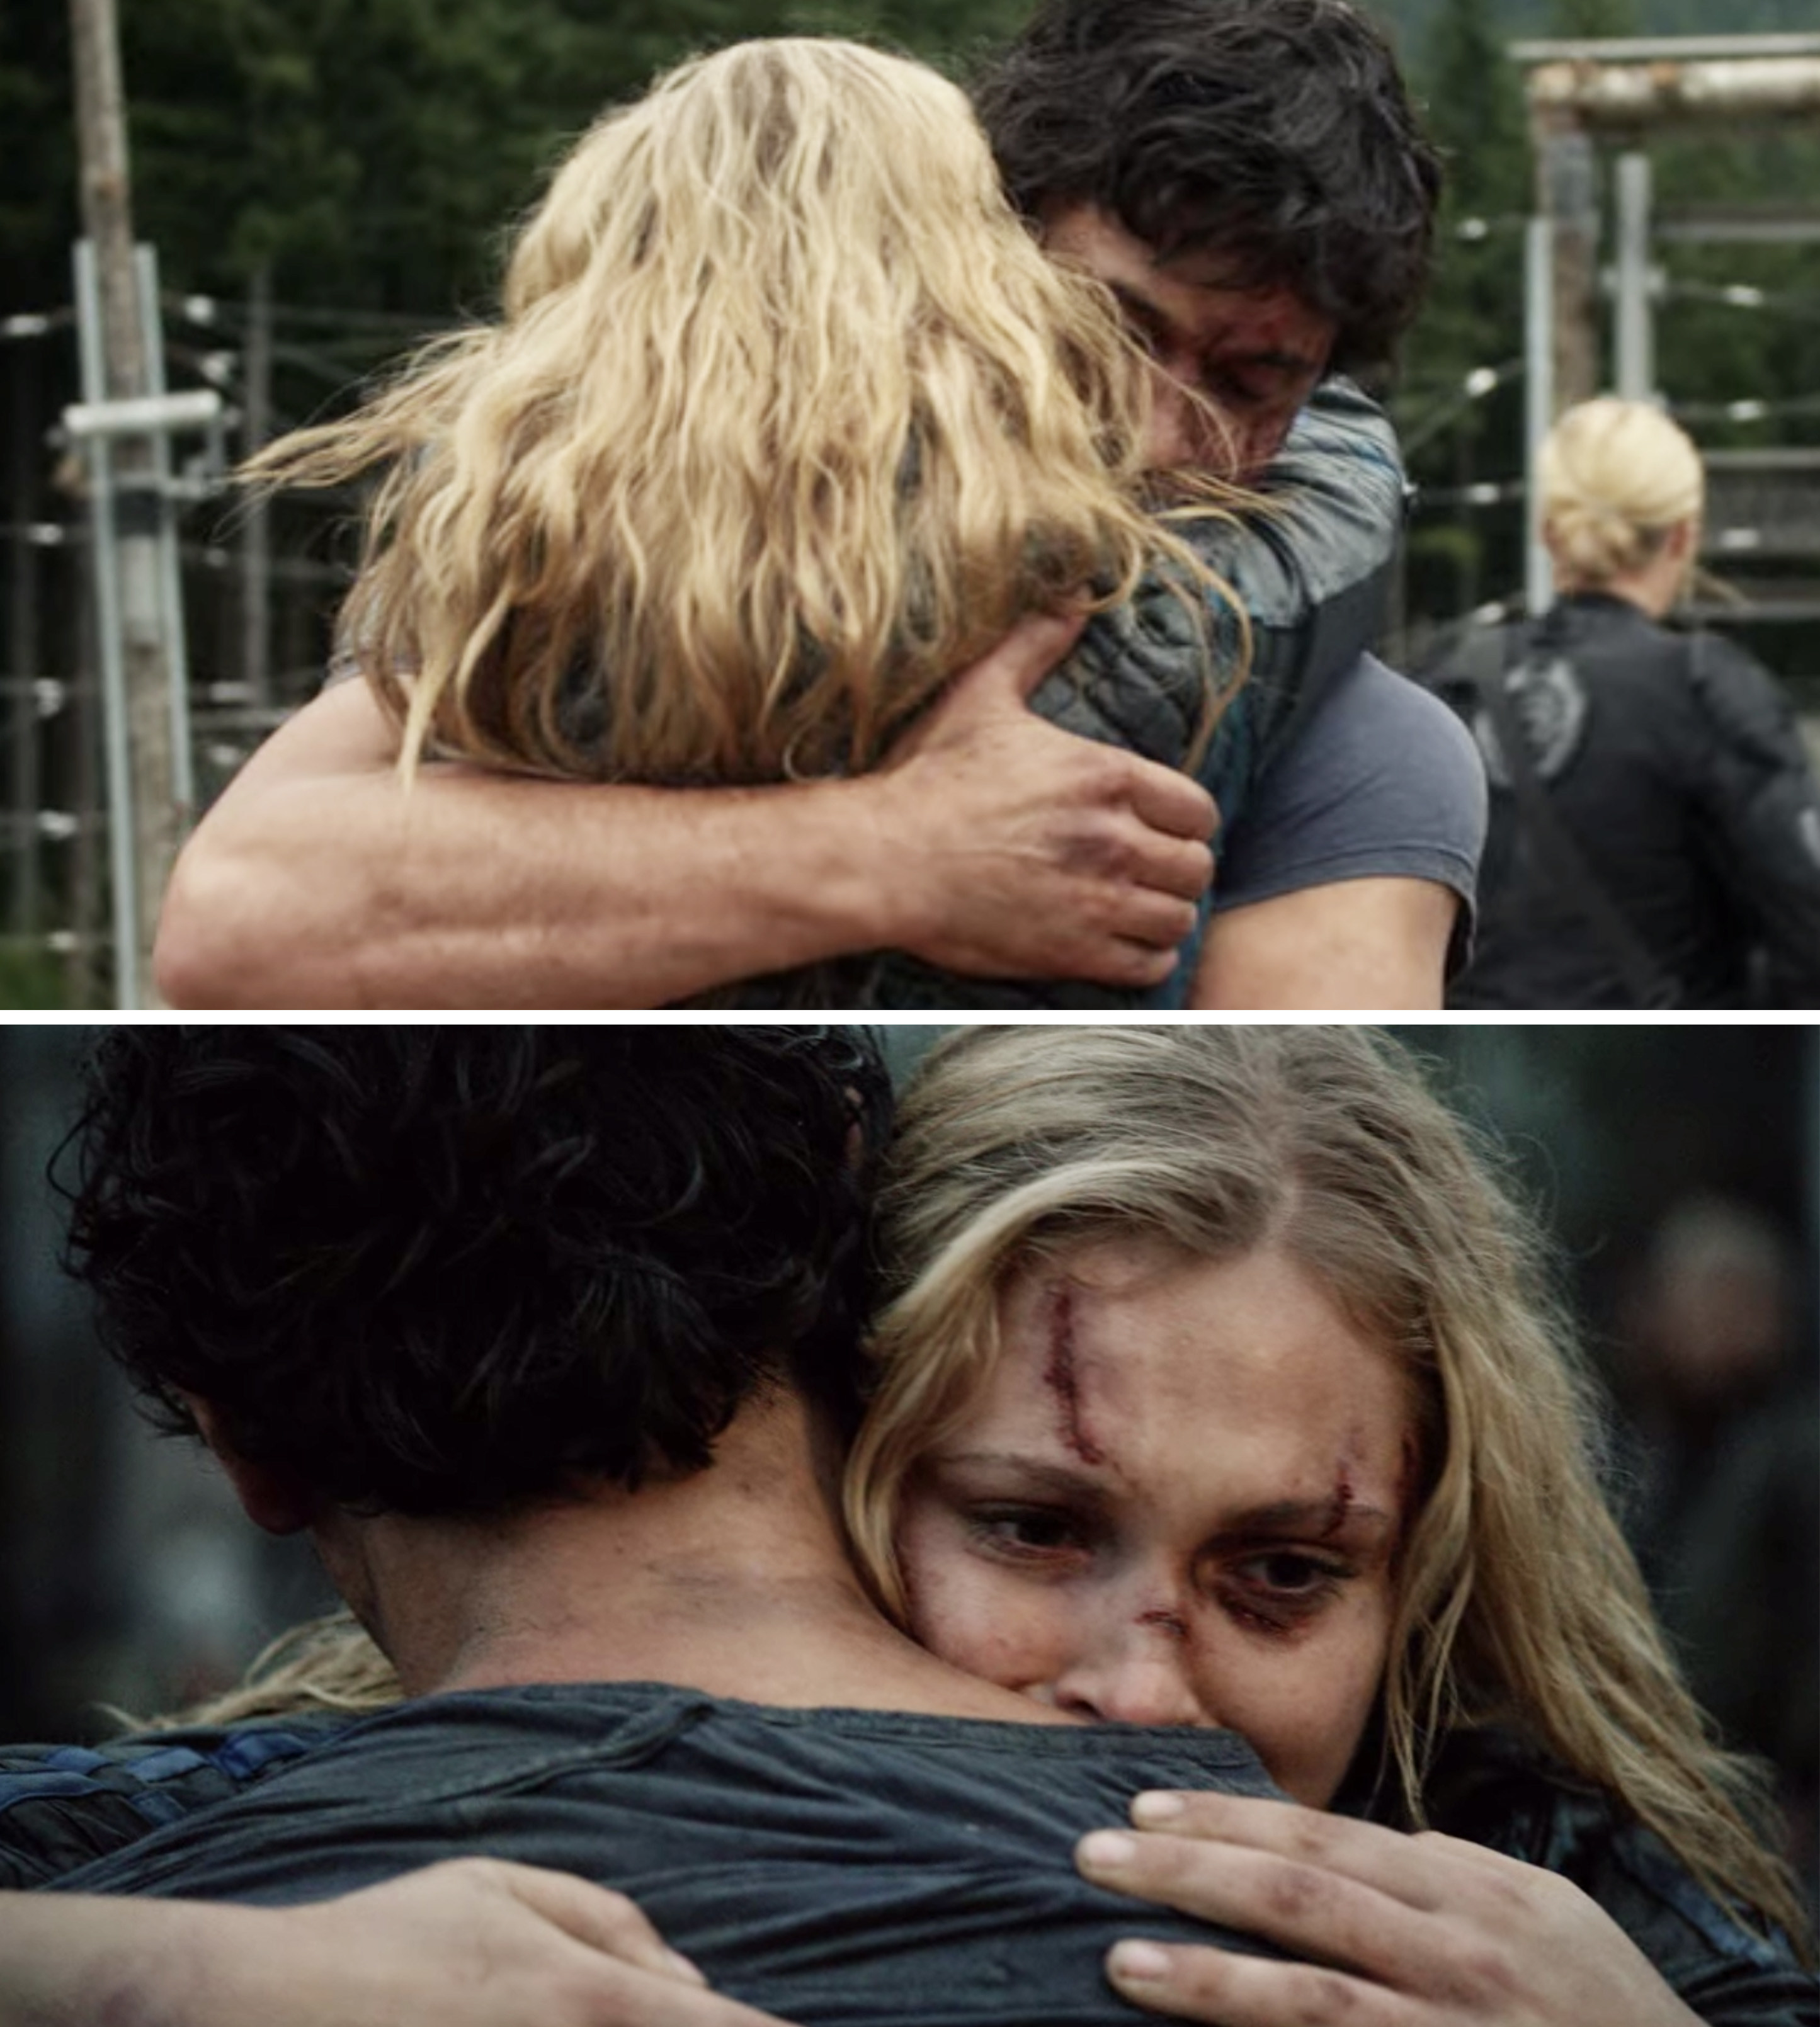 Bellamy and Clarke hugging each other